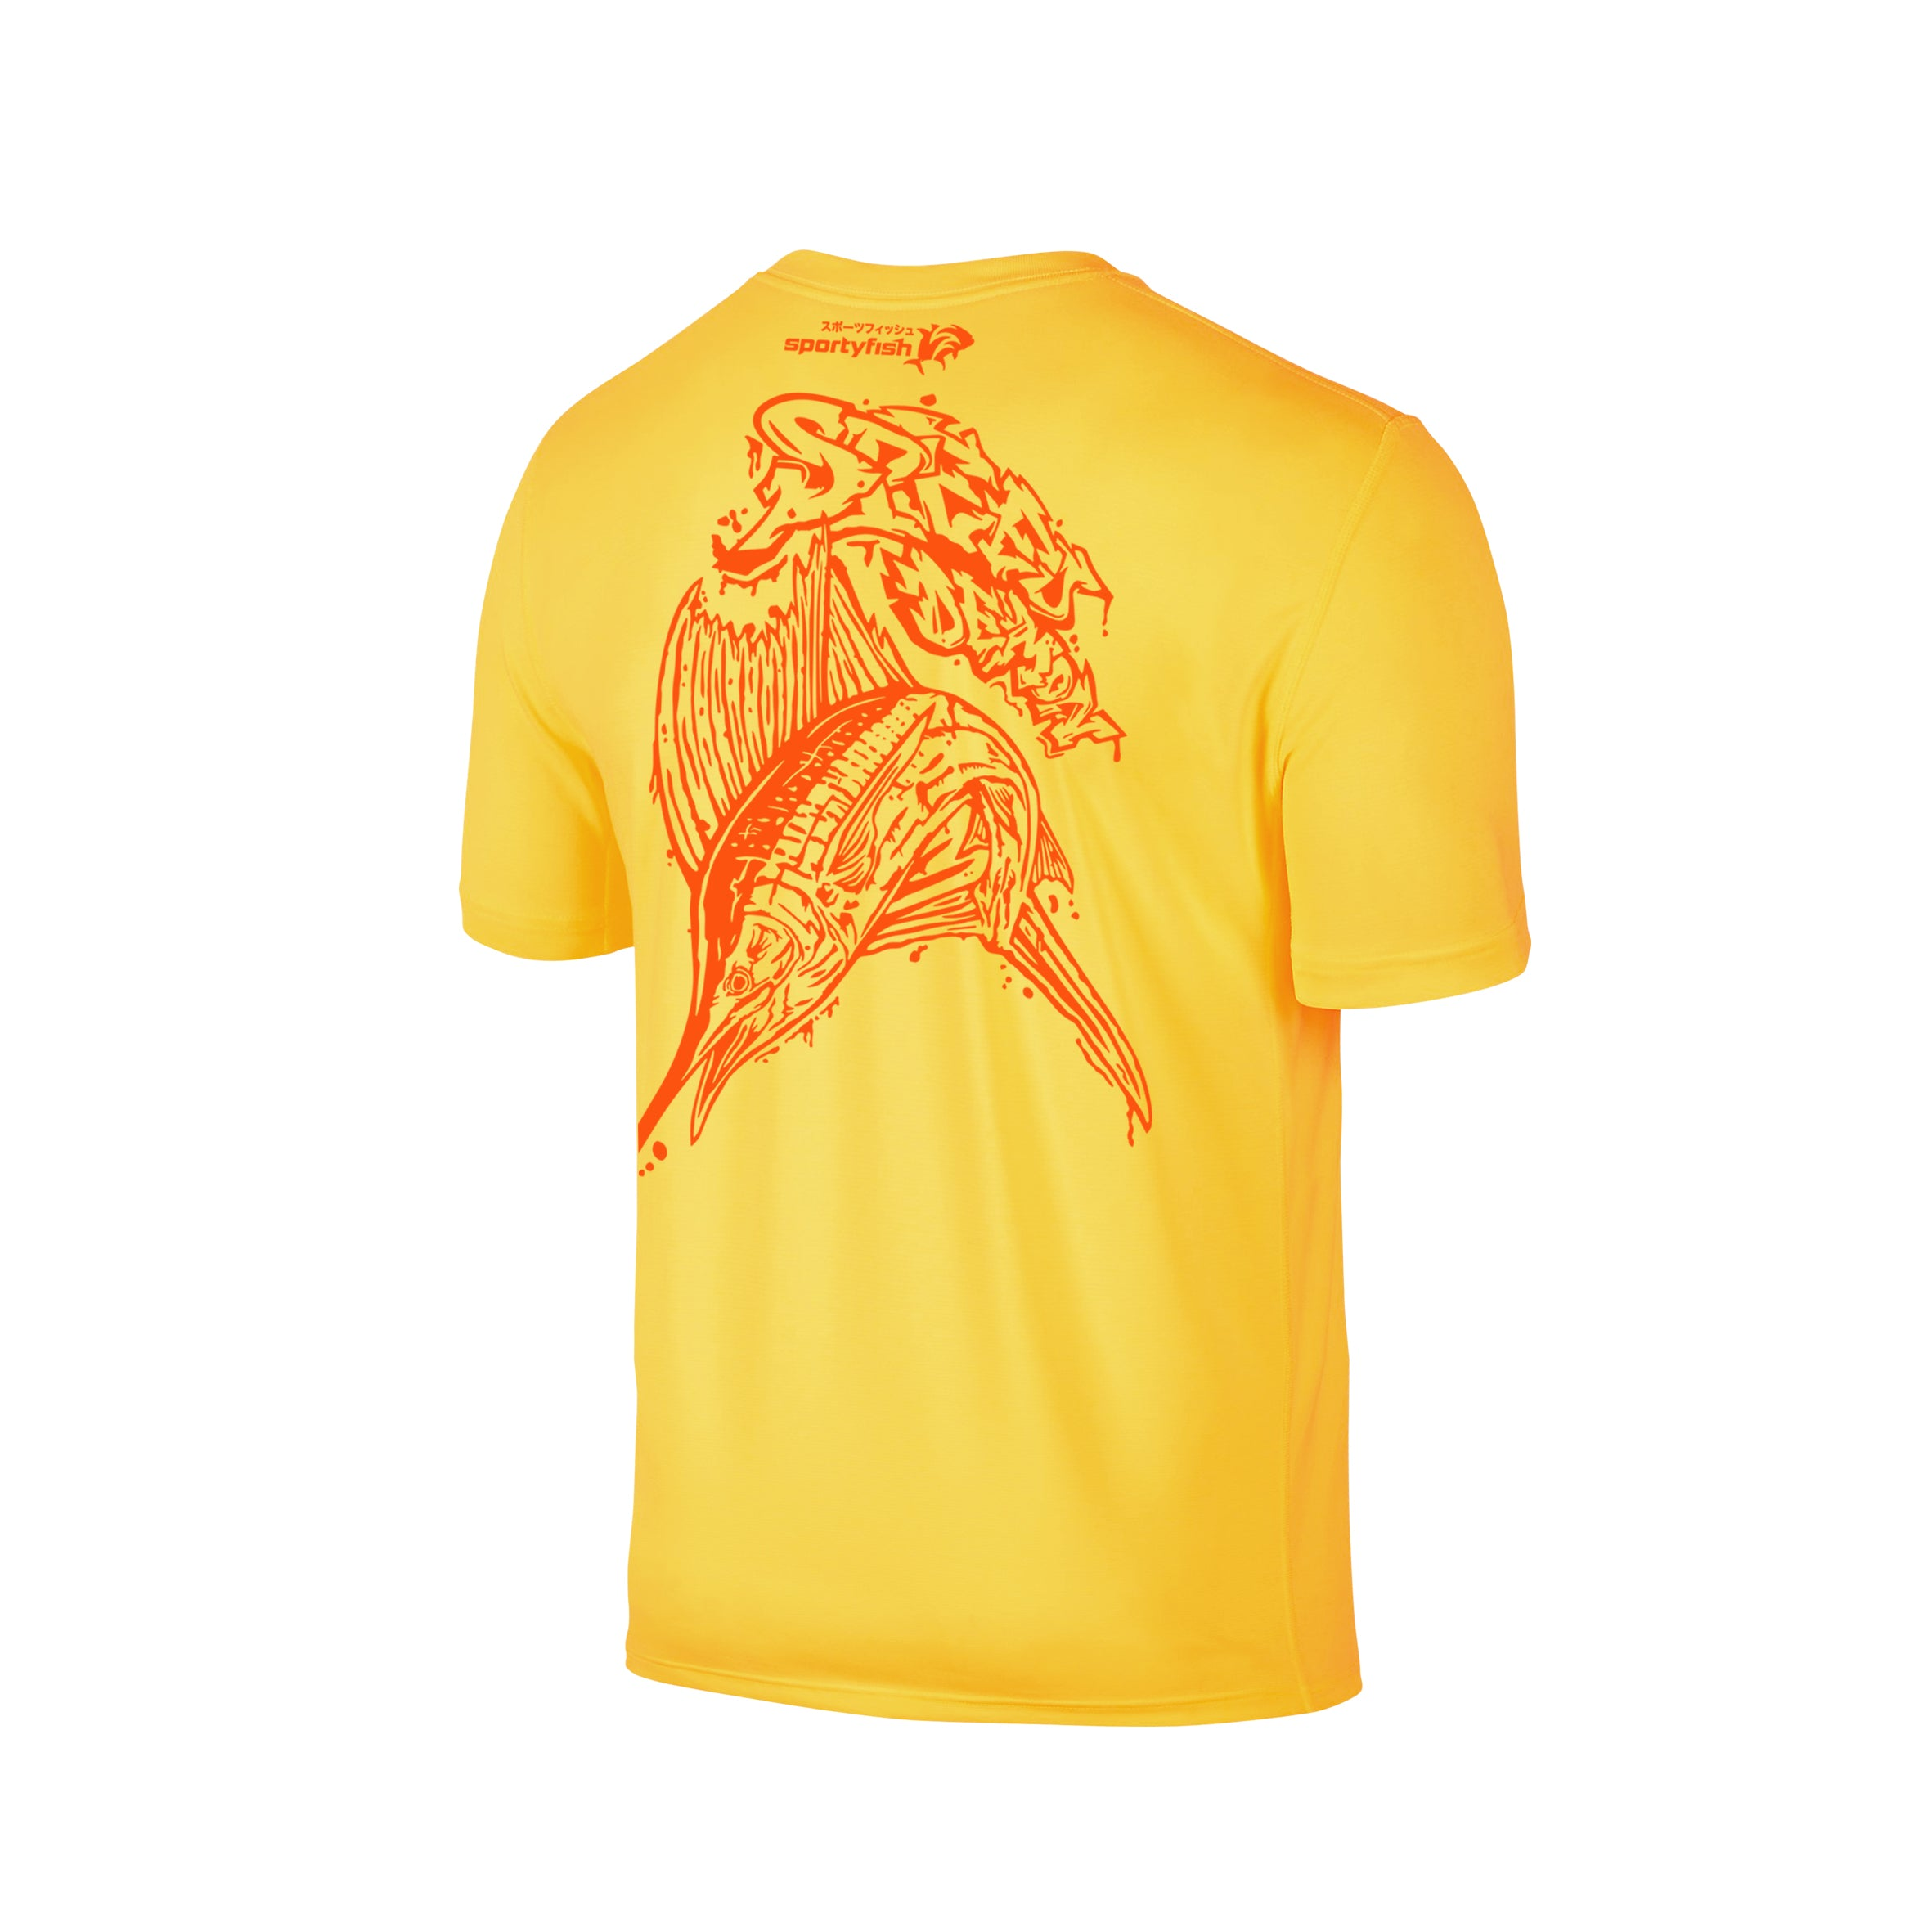 Wildstyle Graffiti Series Yellow T-shirt(back view)Neon Orange: Atlantic Sailfish